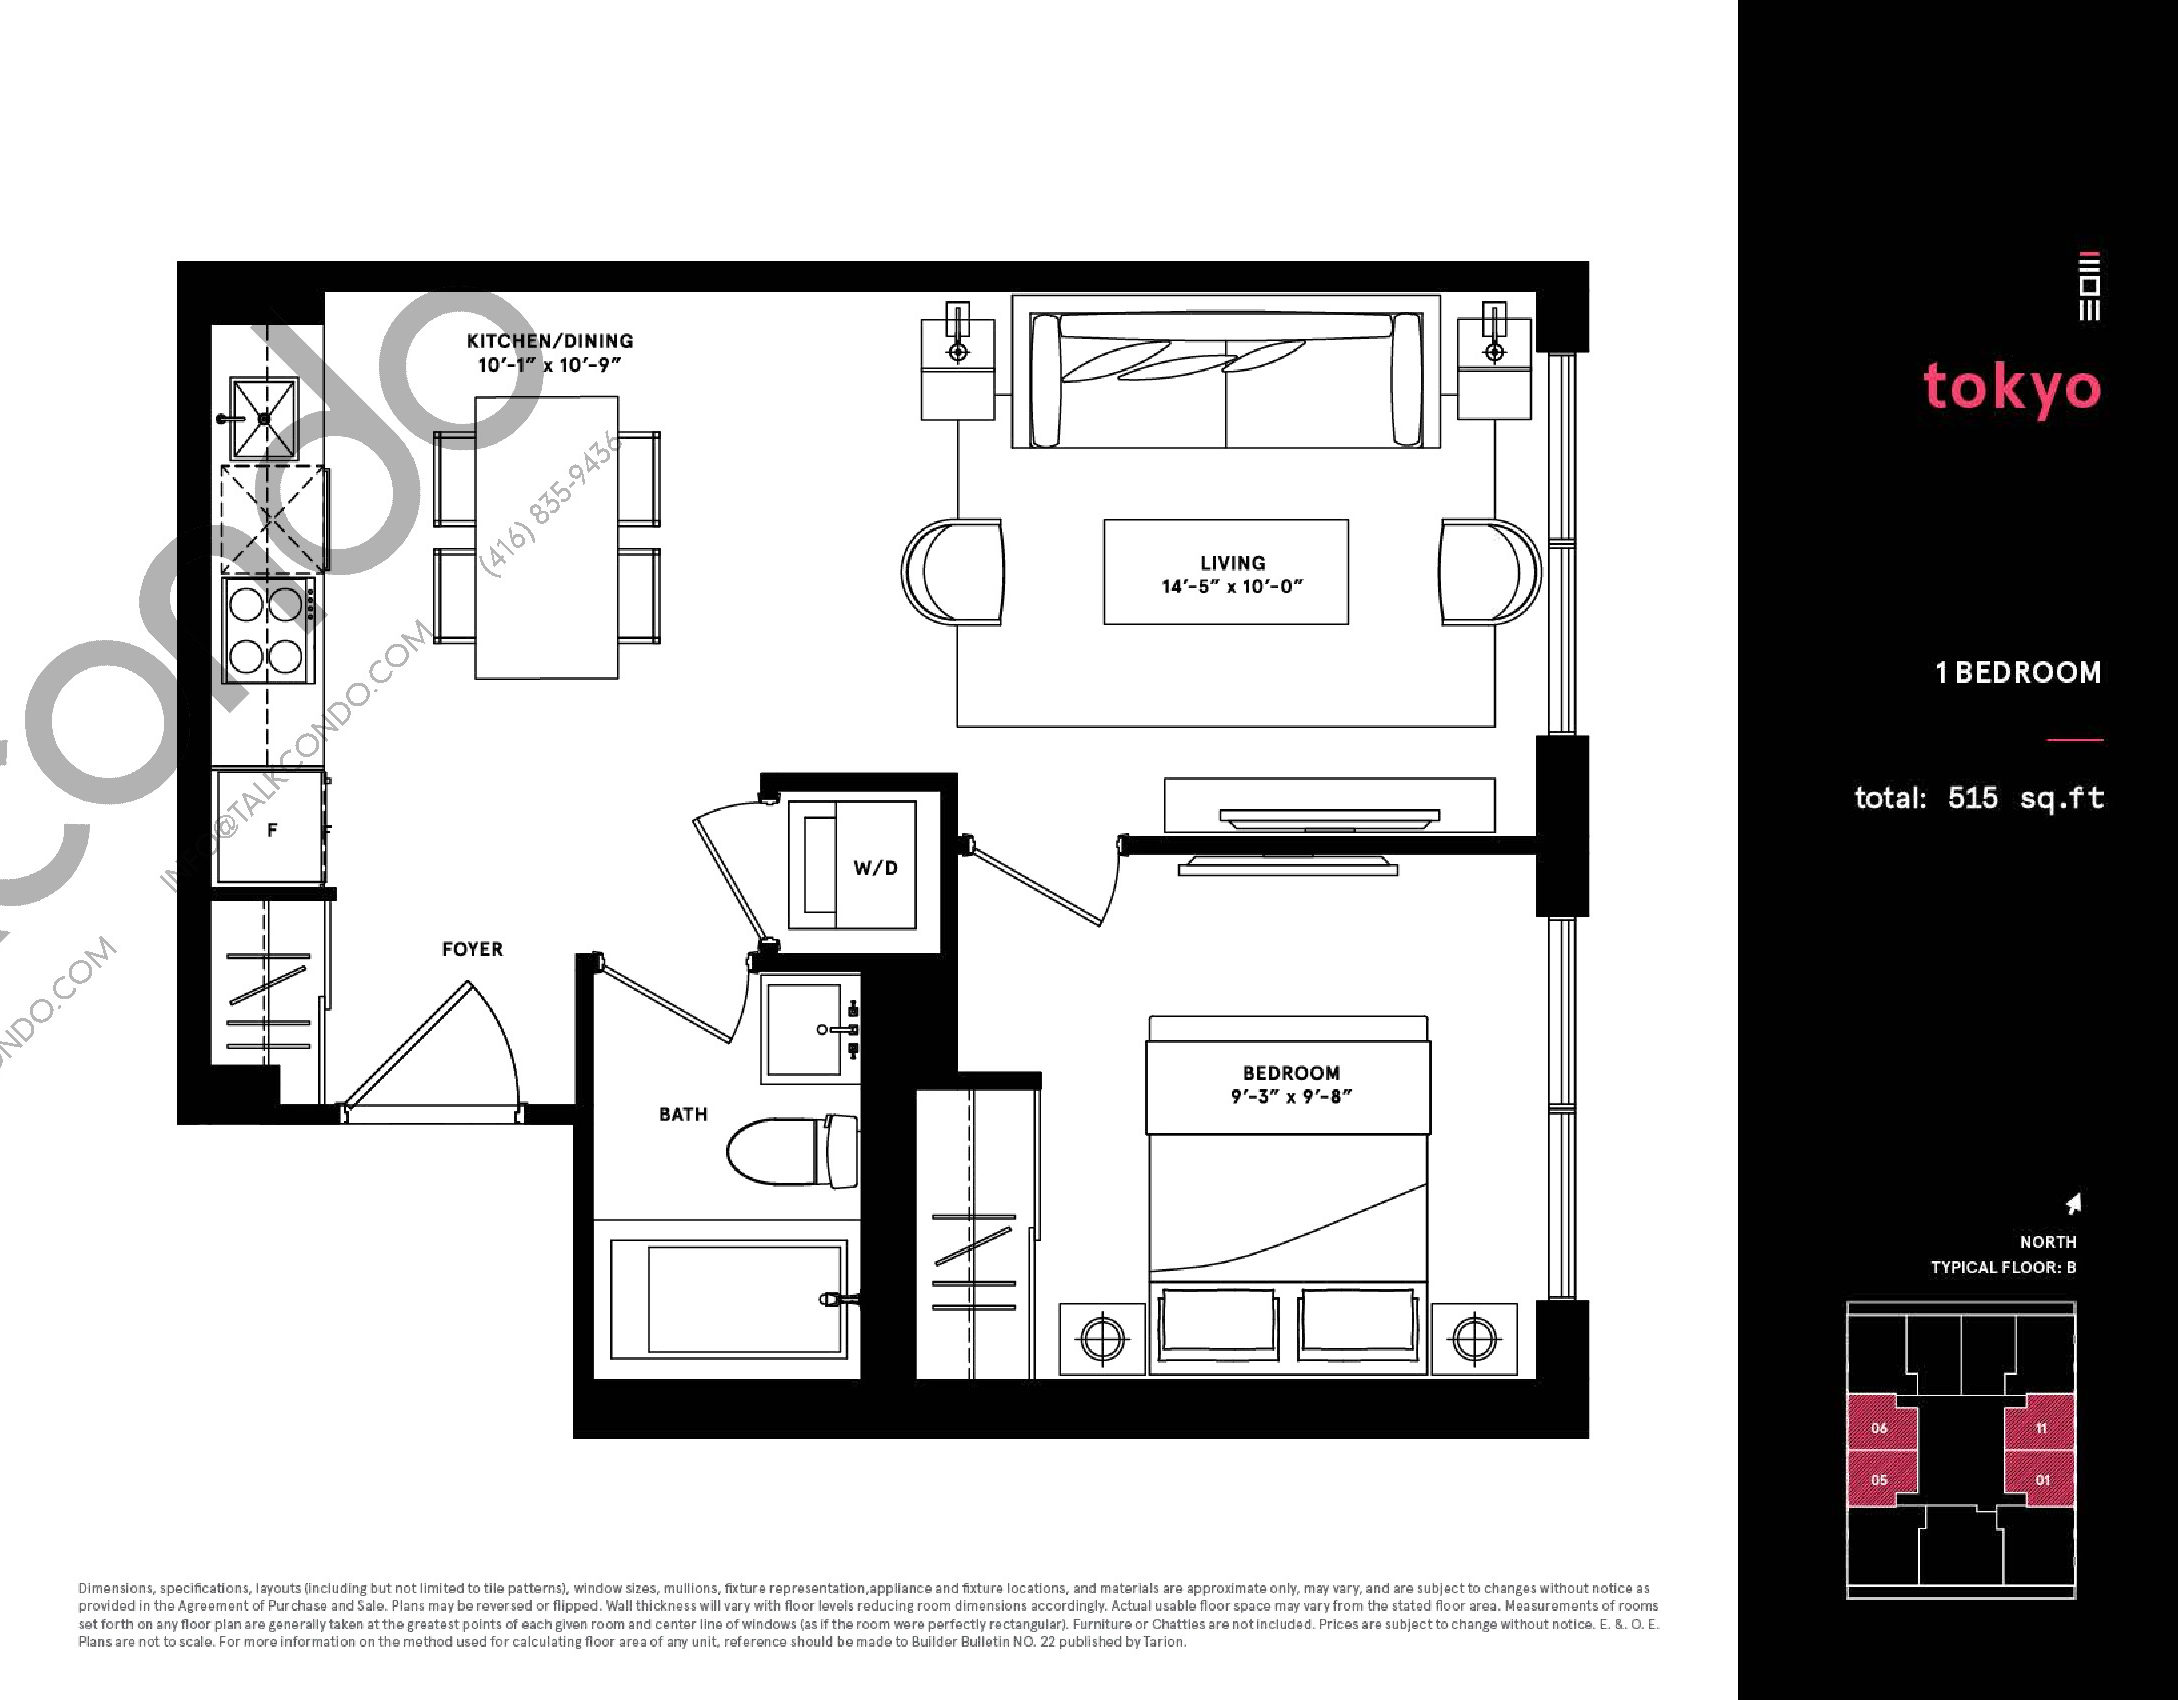 Tokyo Floor Plan at Exchange District Condos - 515 sq.ft